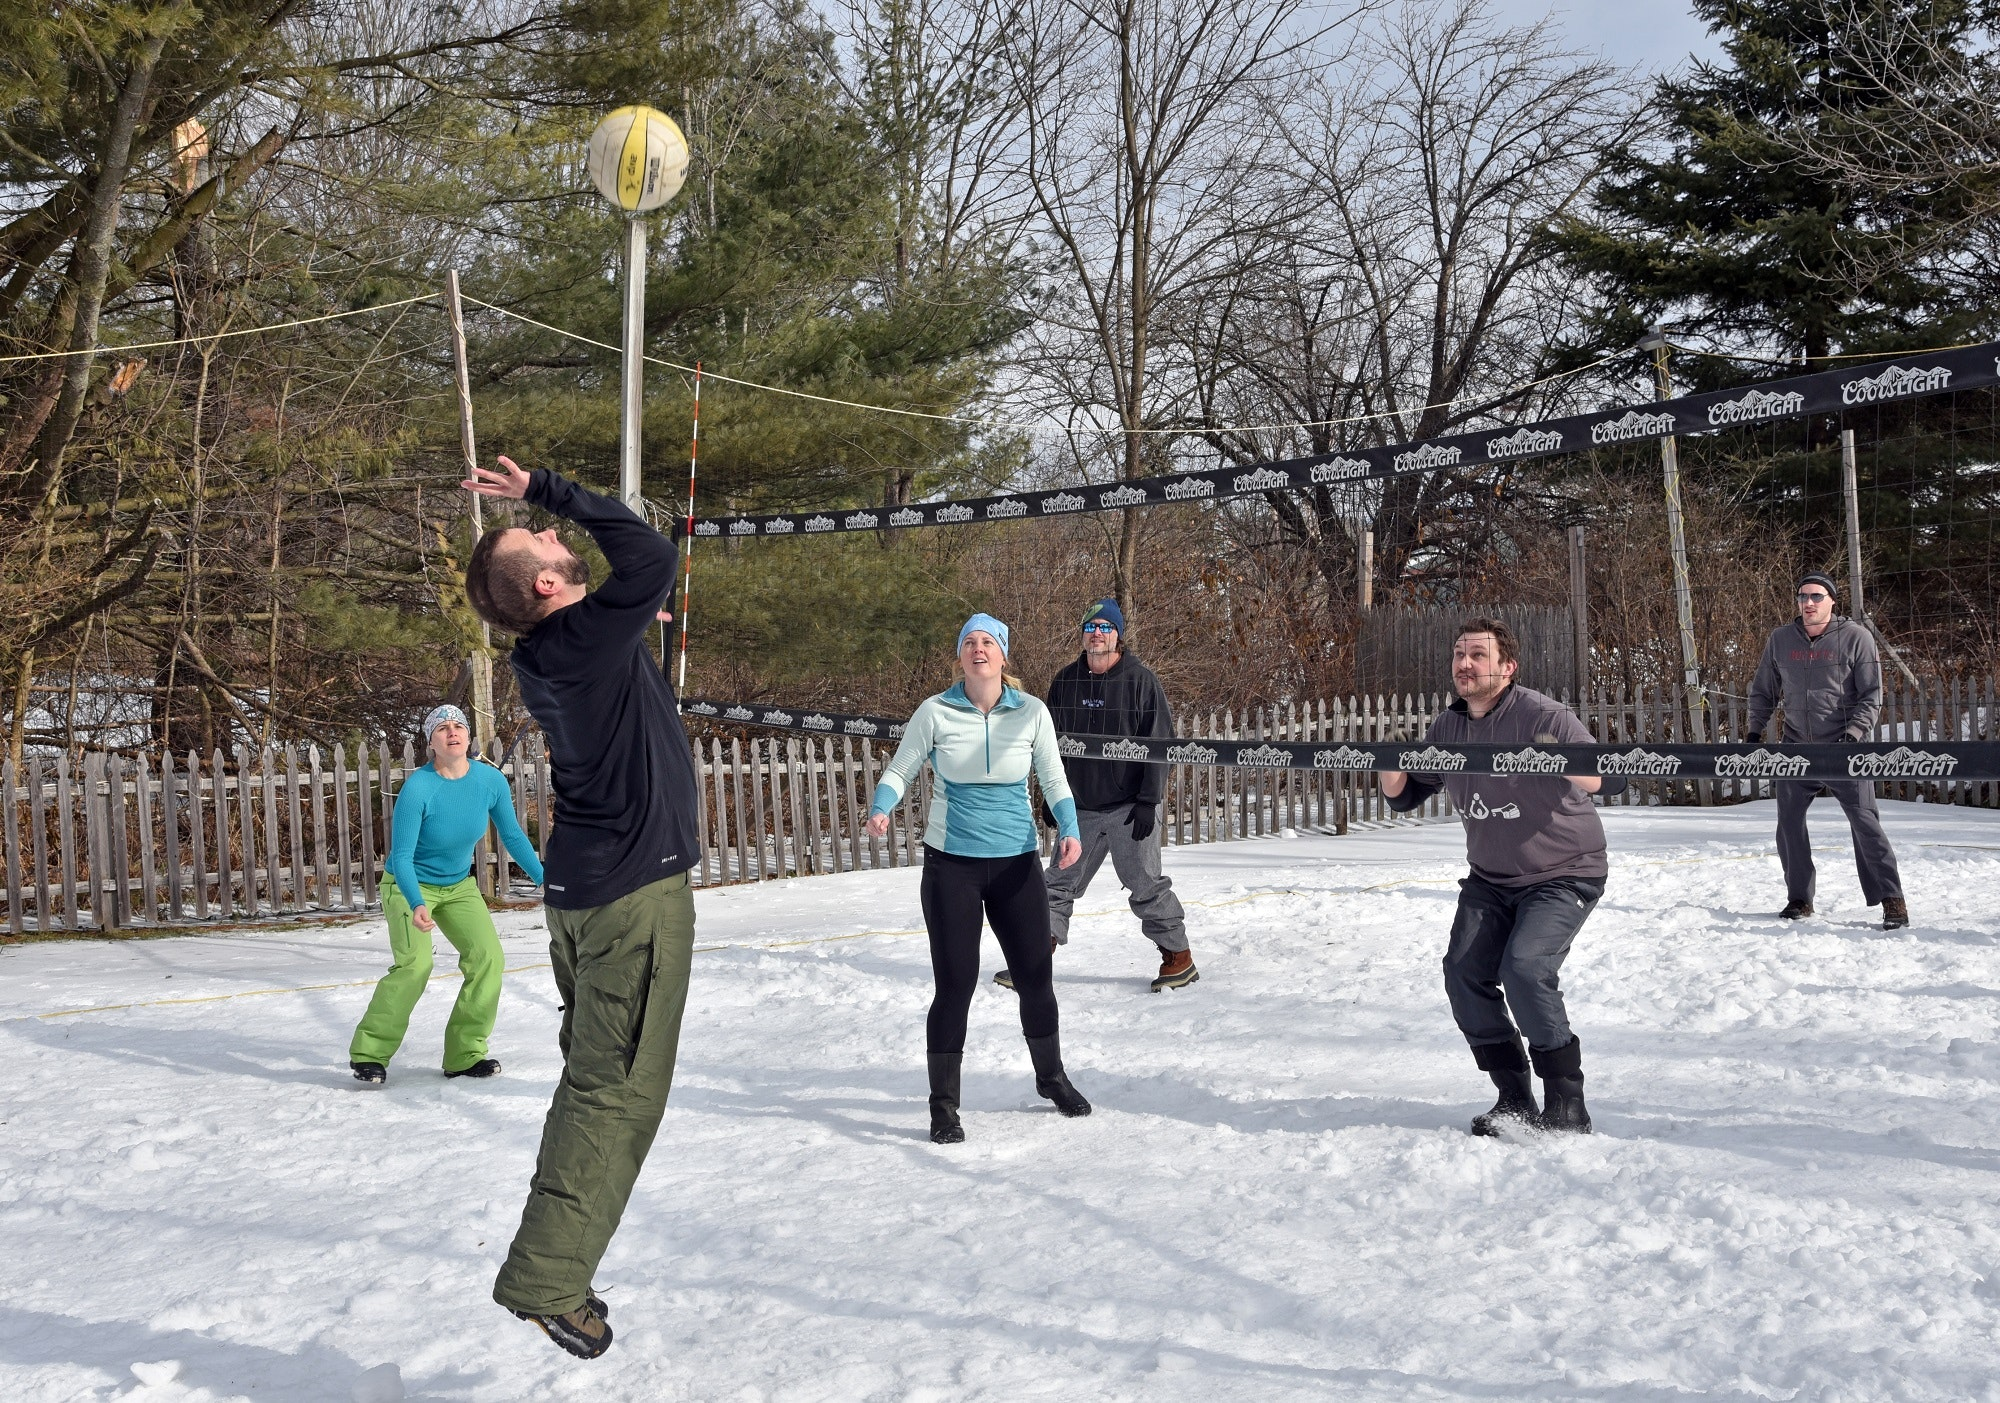 Who needs the beach? Get in a game of snow volleyball at the Stowe Winter Carnival in Vermont.